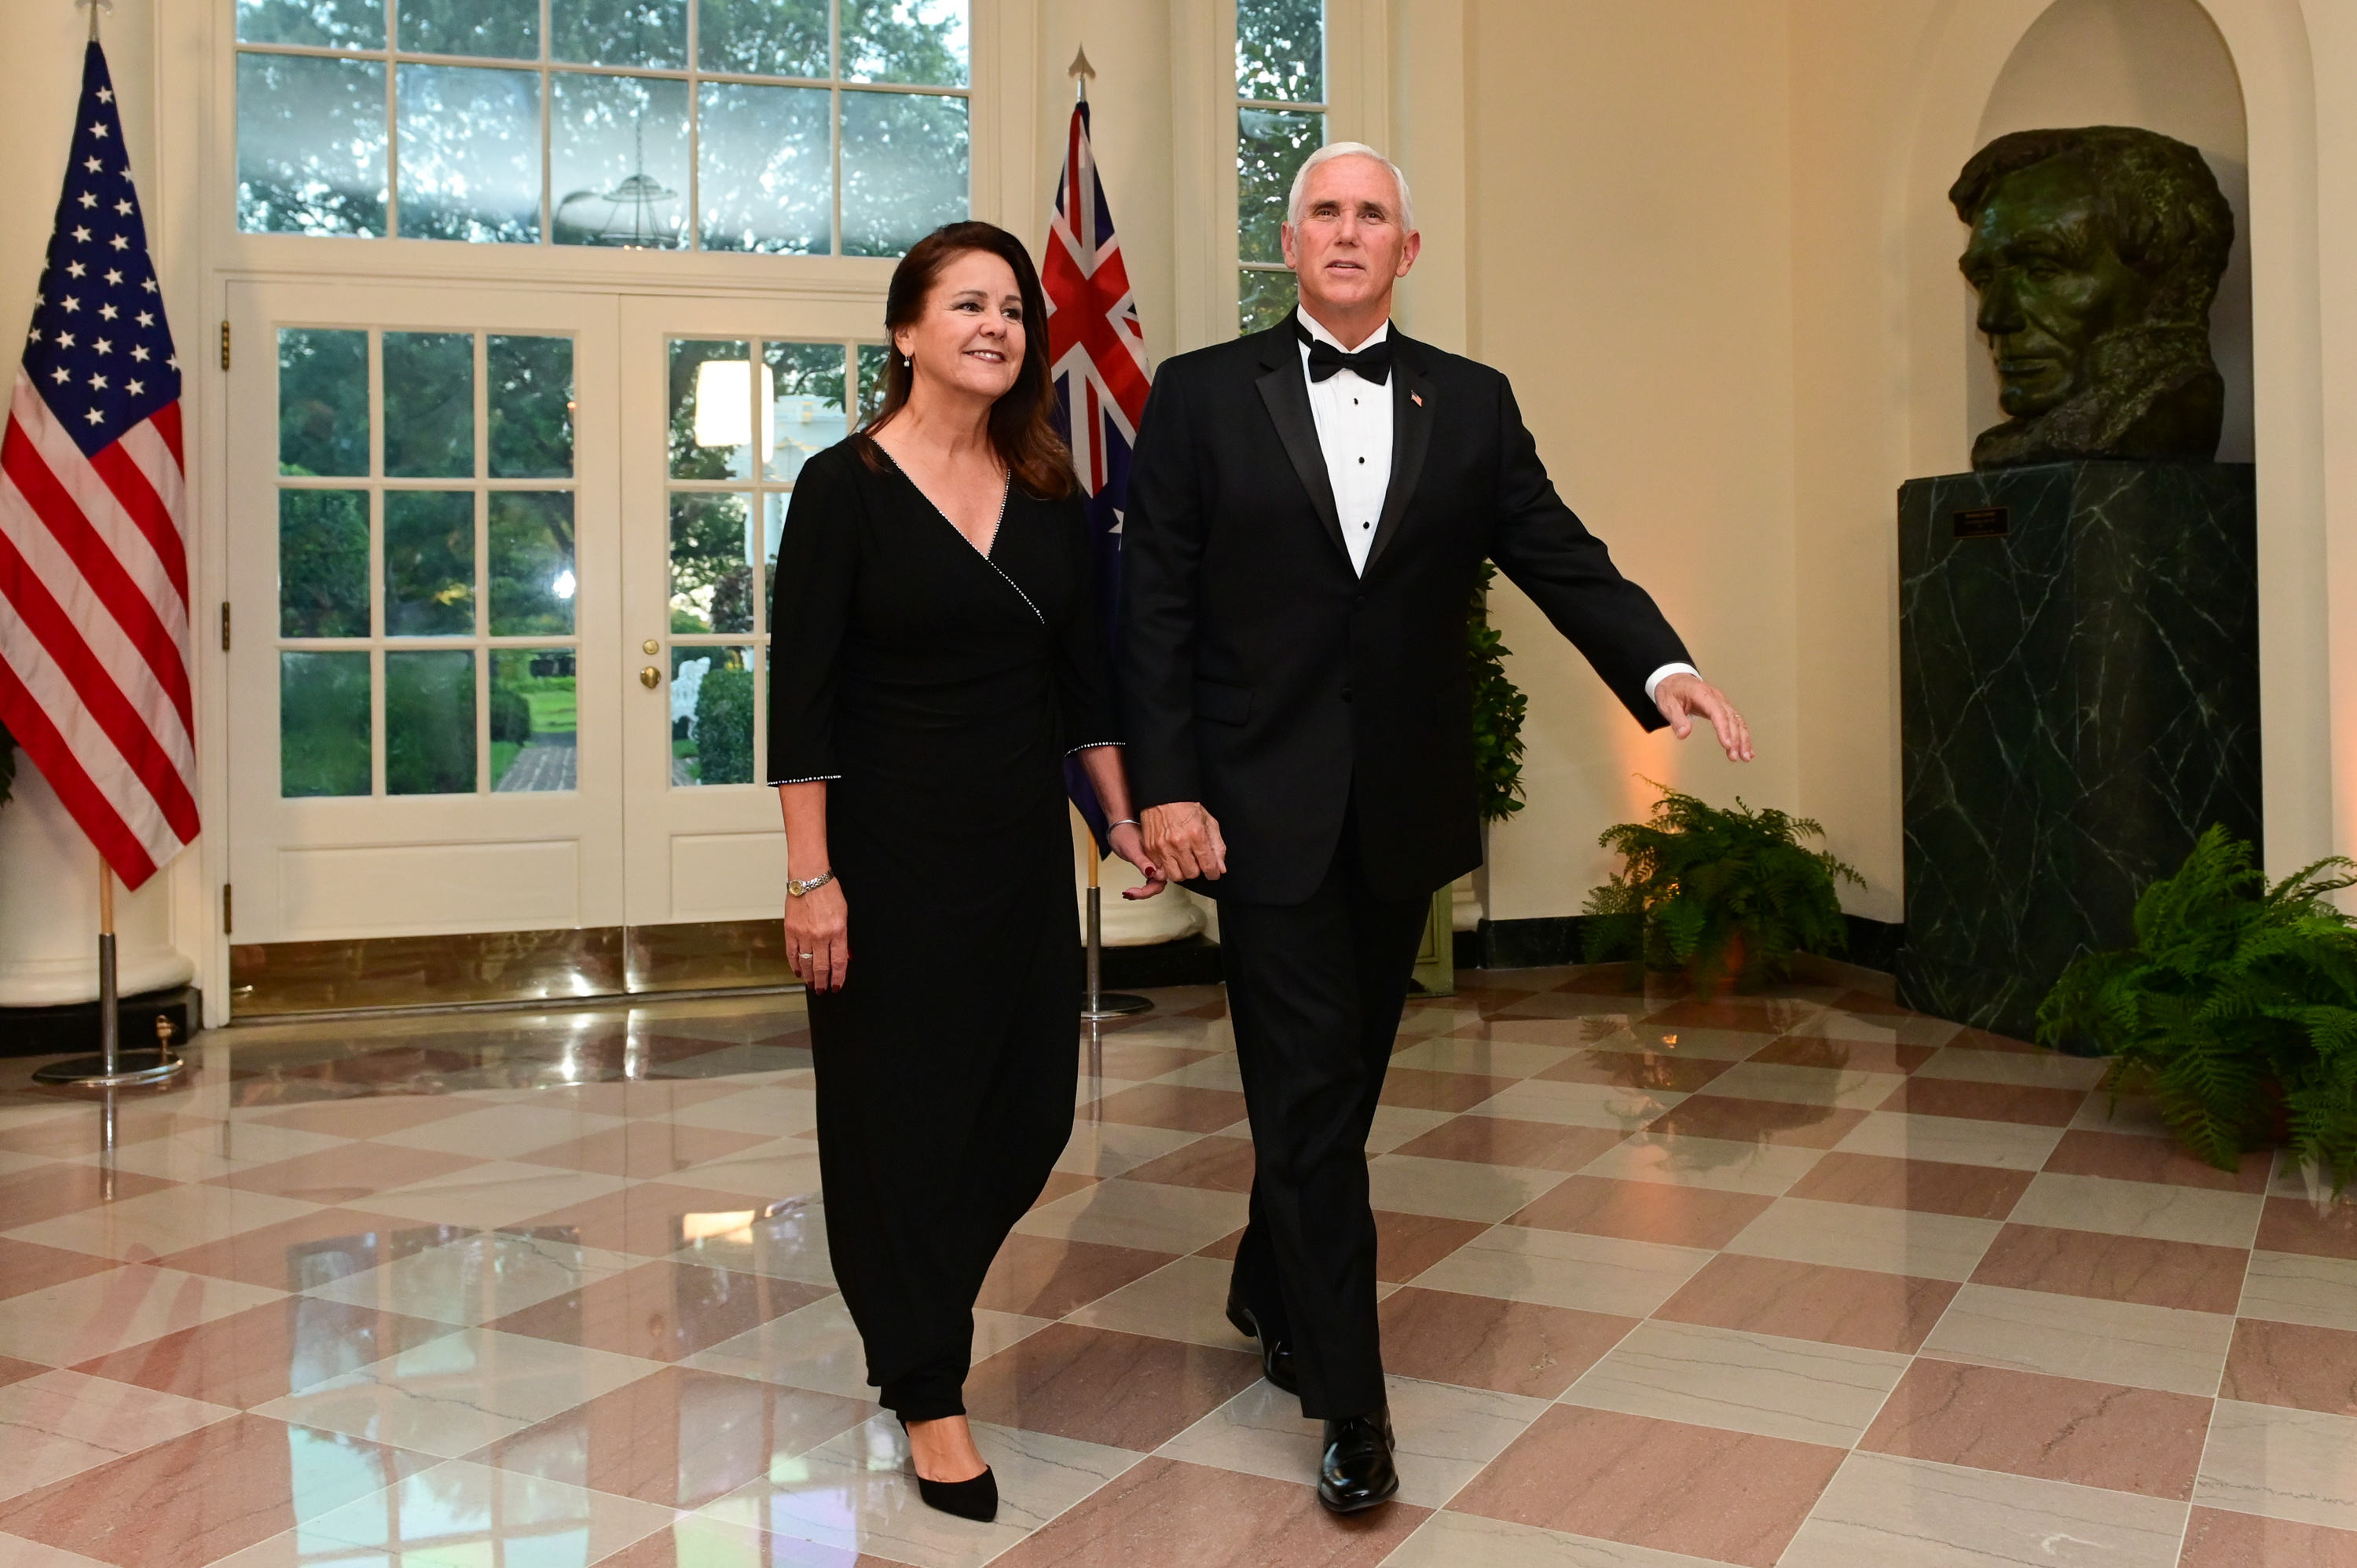 U.S. Vice President Mike Pence arrives with his wife, Karen Pence, for a State Dinner for Australia's Prime Minister Scott Morrison at the White House in Washington, U.S. September 20, 2019. REUTERS/Erin Scott